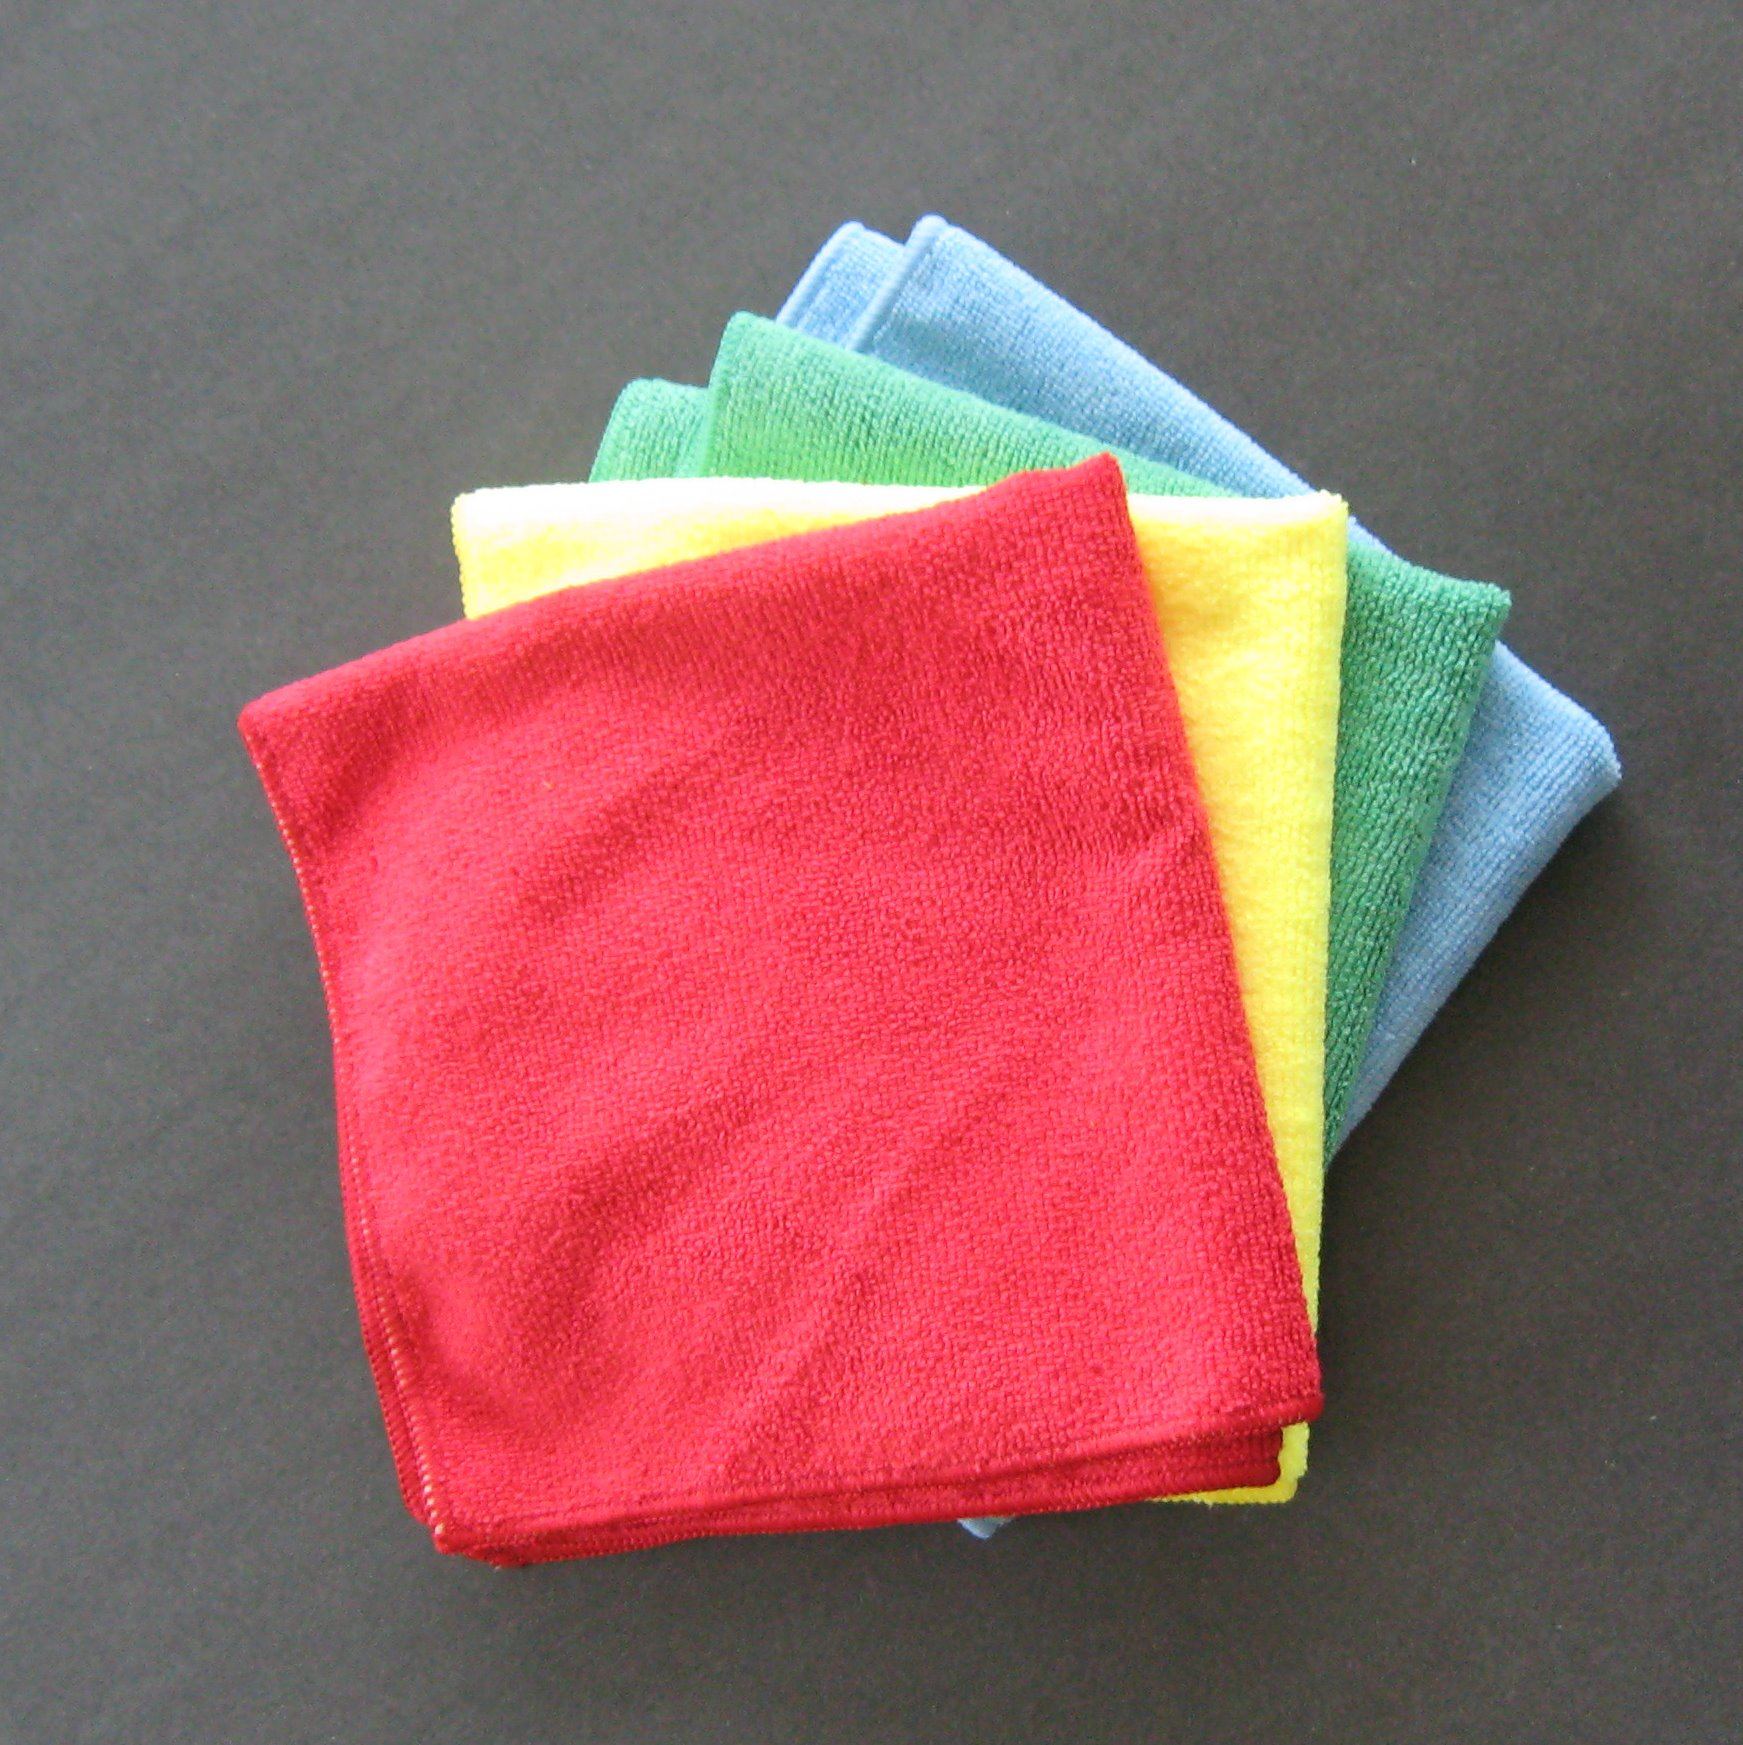 Microfiber Cloth Image